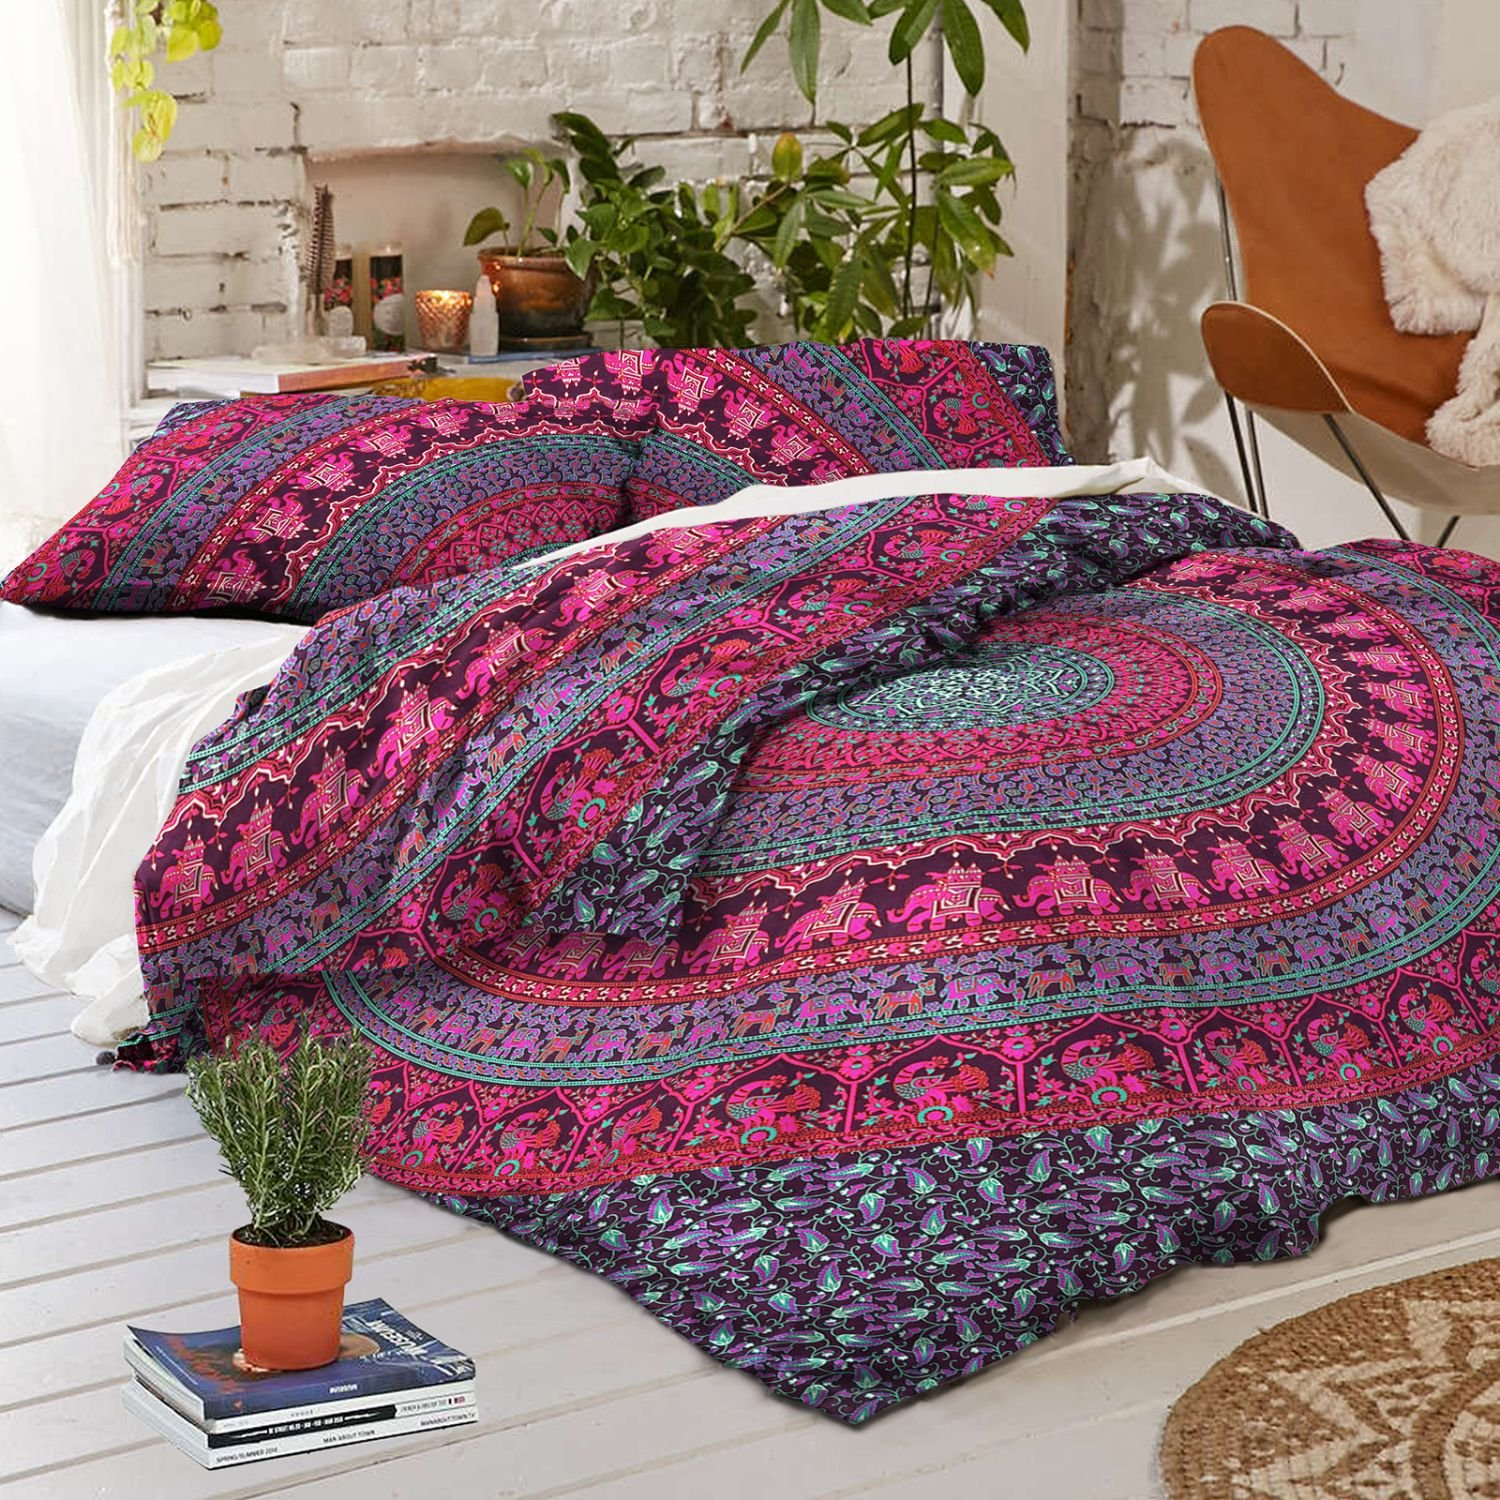 chic style with quilt duvet ease light purple cover bohemian paisley percent cotton set boho sets bedding more comforter